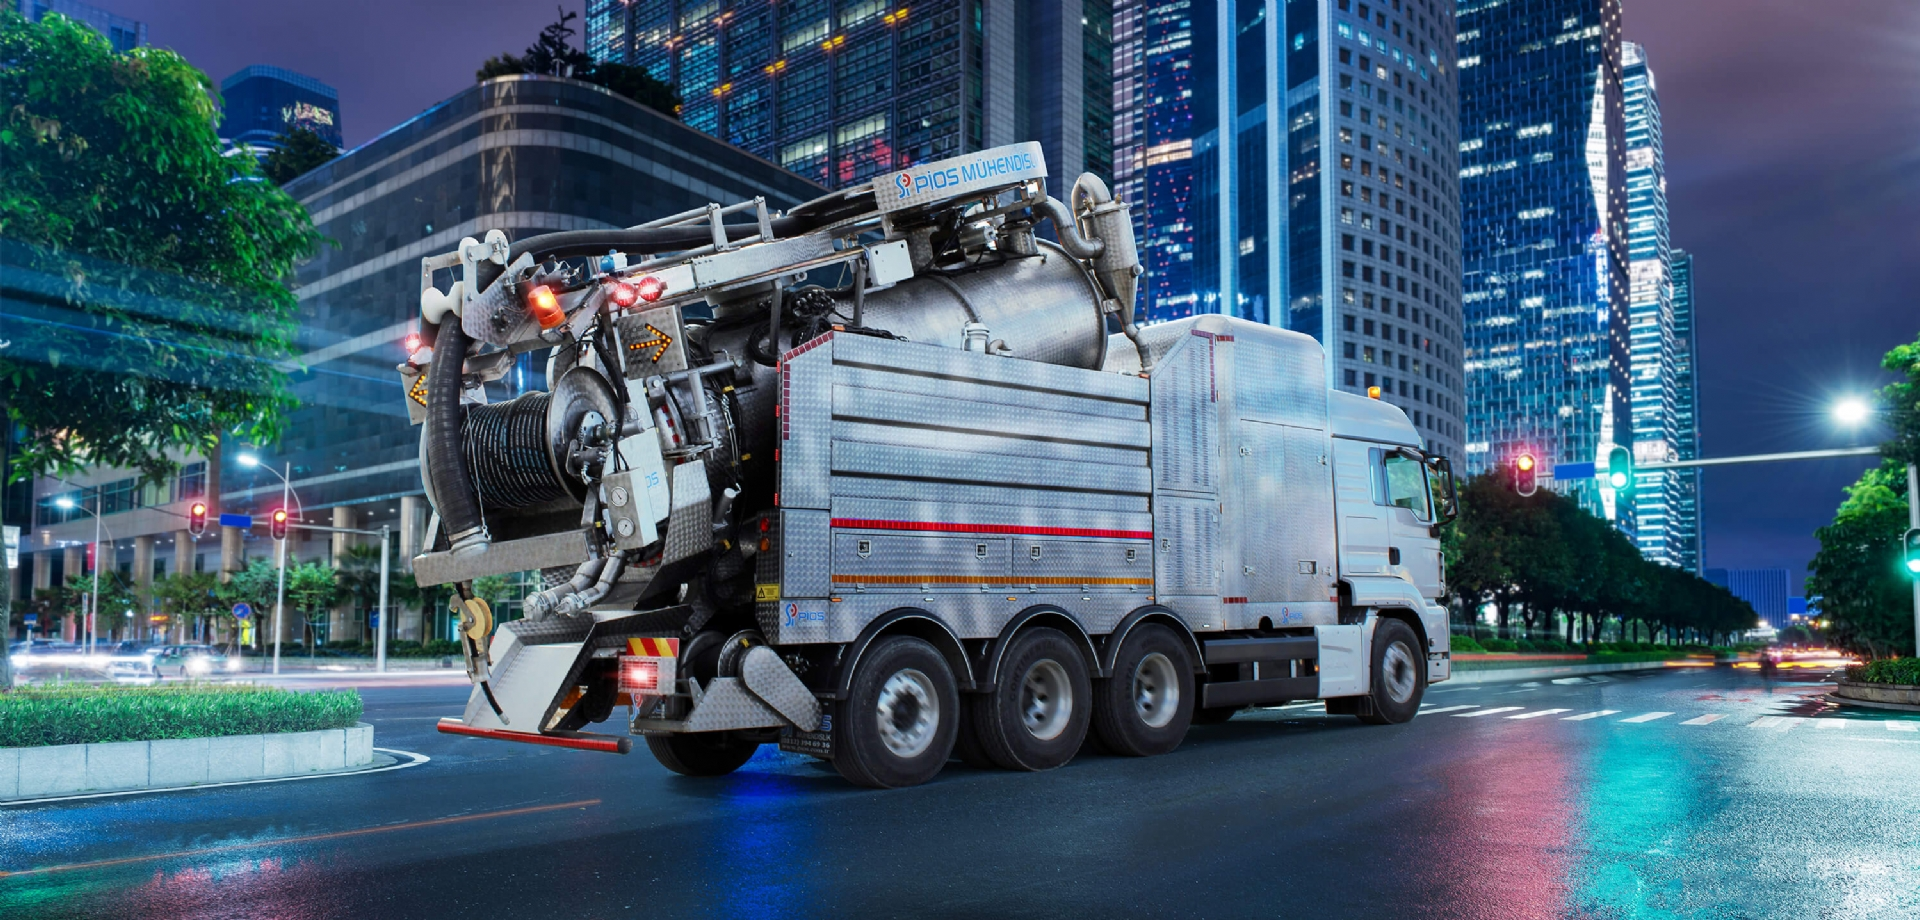 XX-LARGE COMBINATION SEWER CLEANING TRUCK